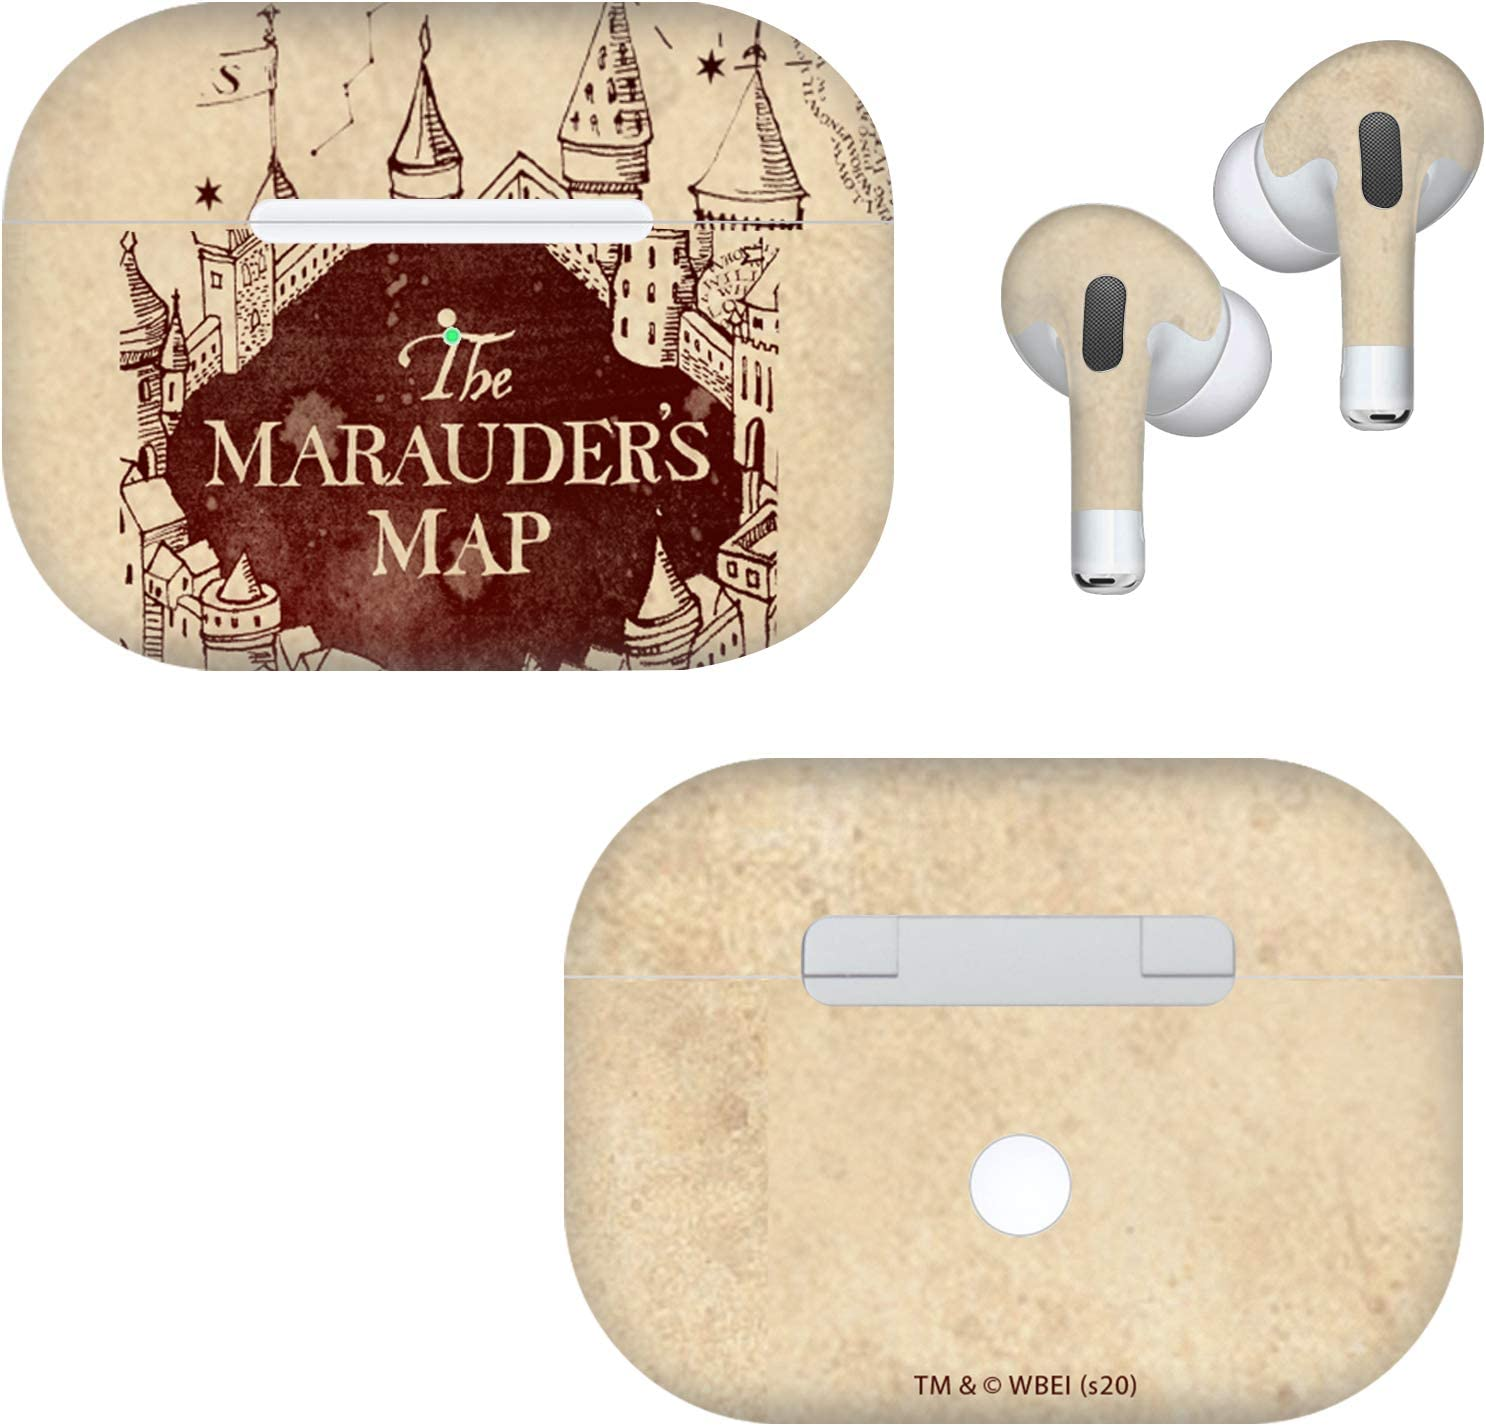 Head Case Designs Officially Licensed Harry Potter Marauder's Map Prisoner of Azkaban VII Matte Vinyl Sticker Skin Decal Cover Compatible with AirPods Pro